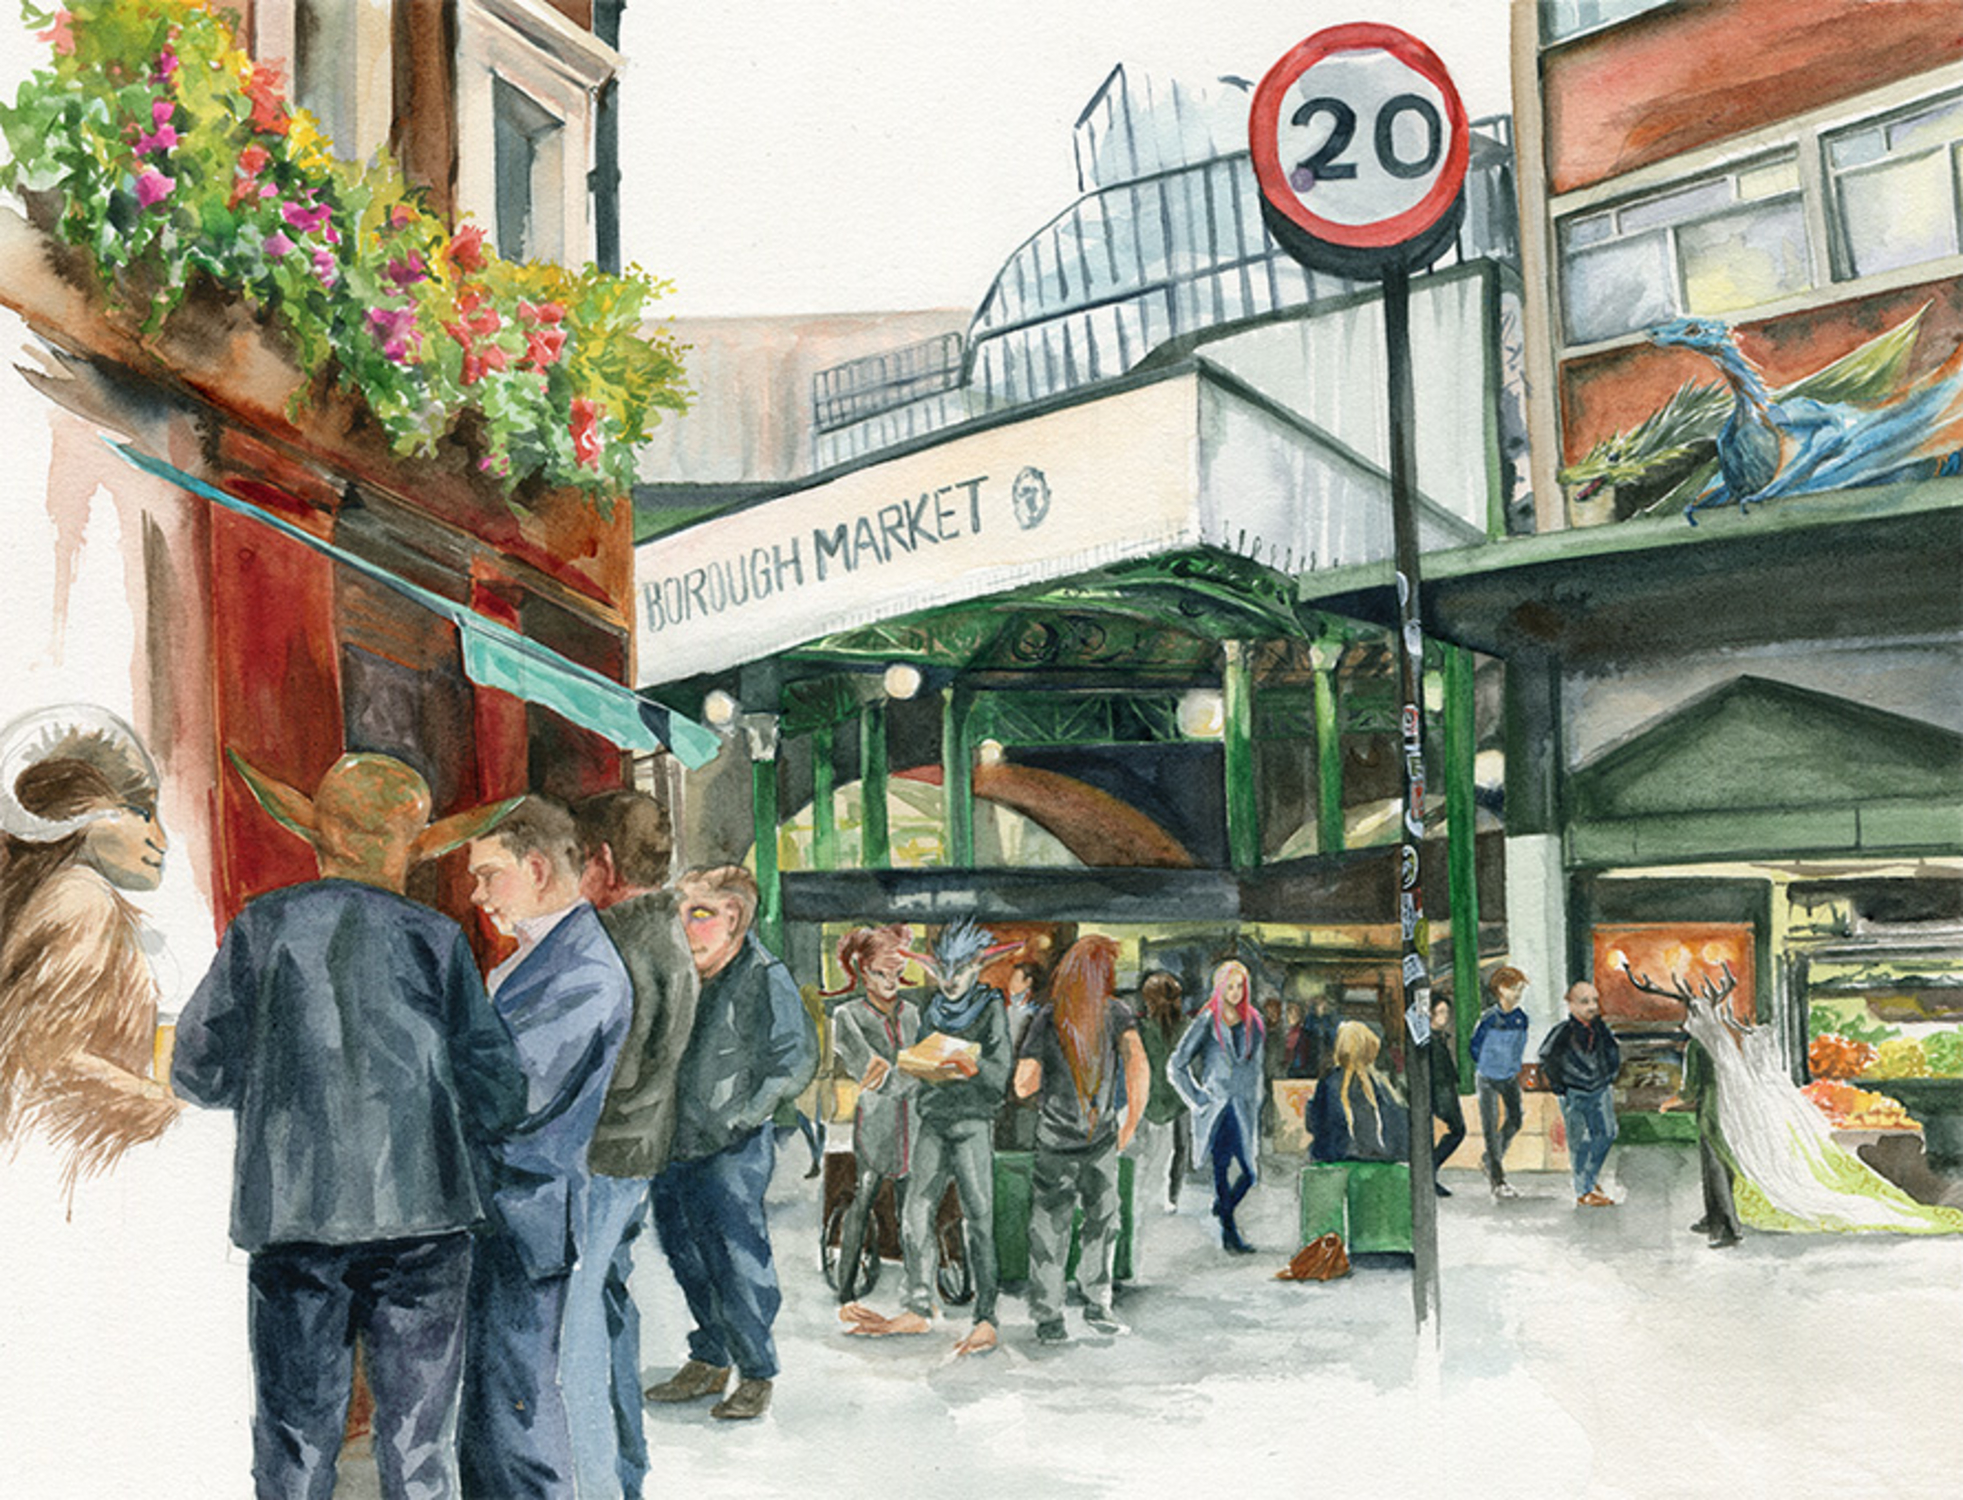 Borough Market, Southwark Artwork by Clare Henry McCanna